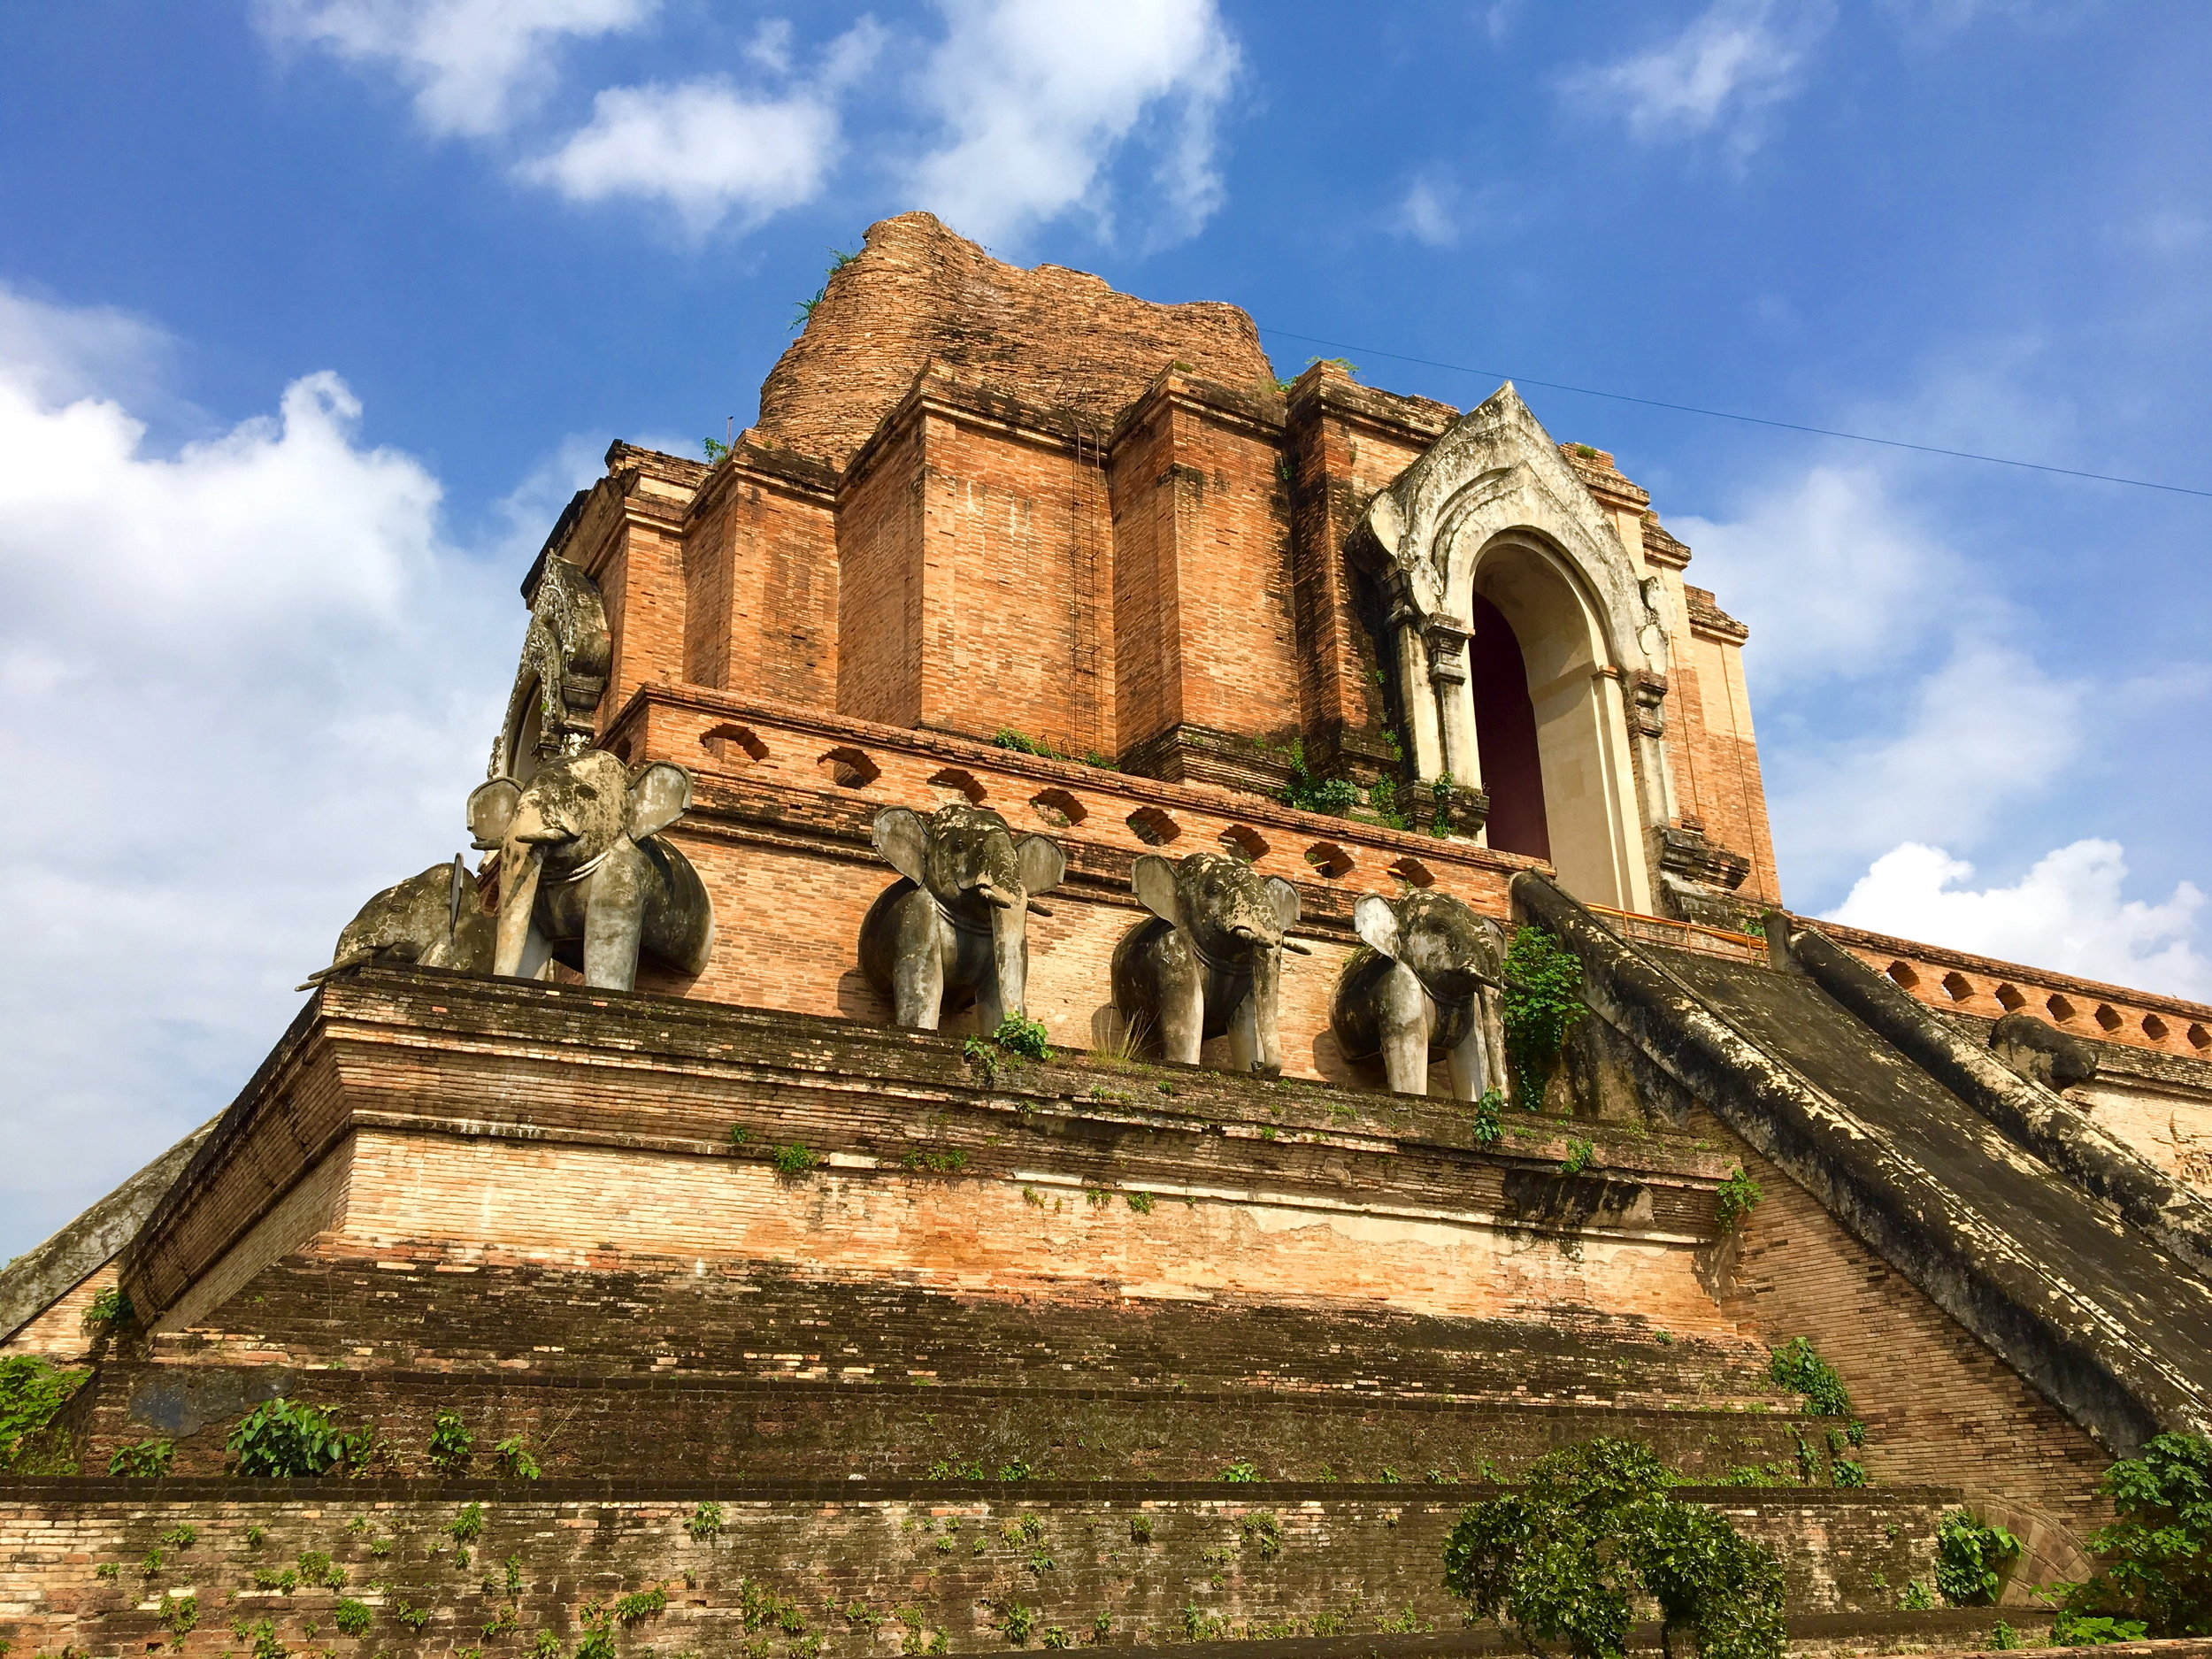 The massive central Chedi (stupa) of the Wat Chedi Luang